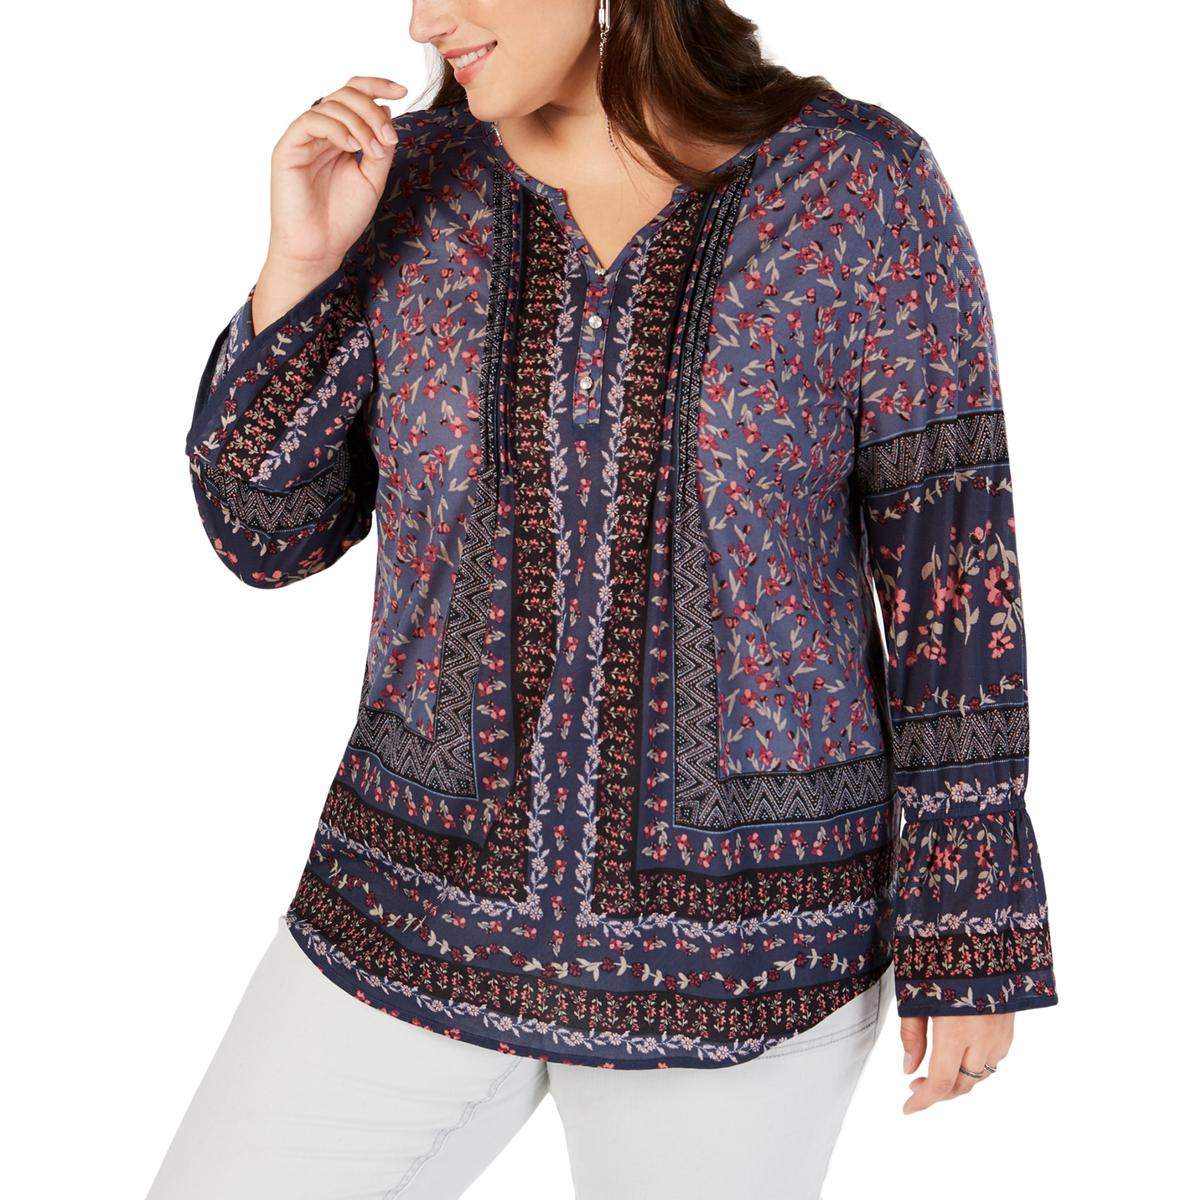 Womens Embroidered Flutter Sleeves Peasant Top Shirt Plus BHFO 1190 Style /& Co